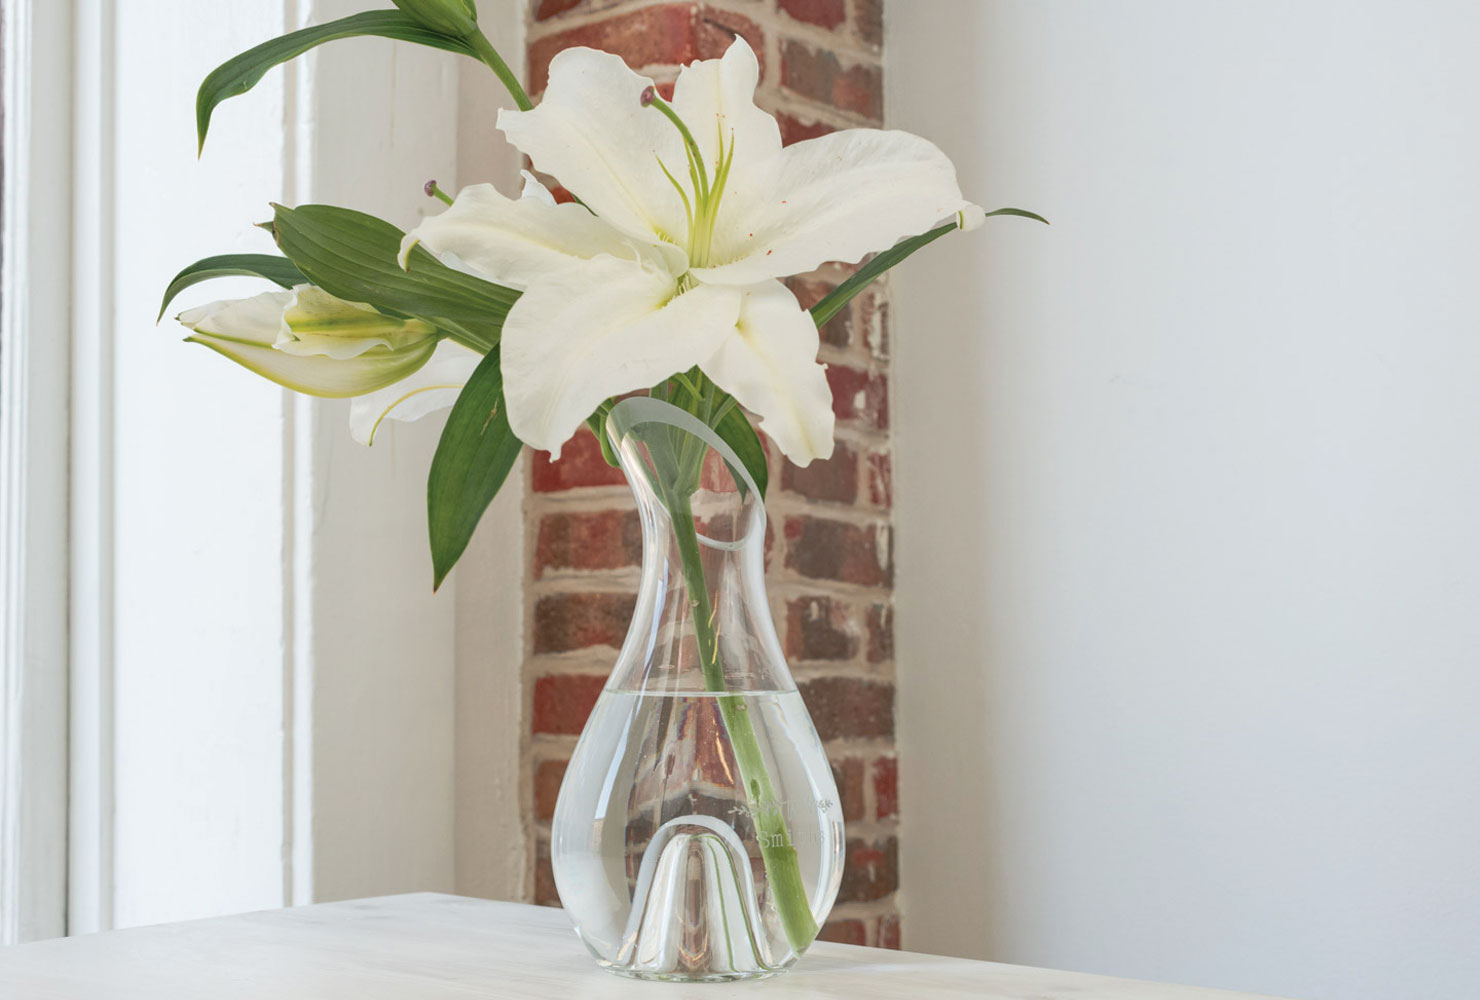 flower in vase sits on table